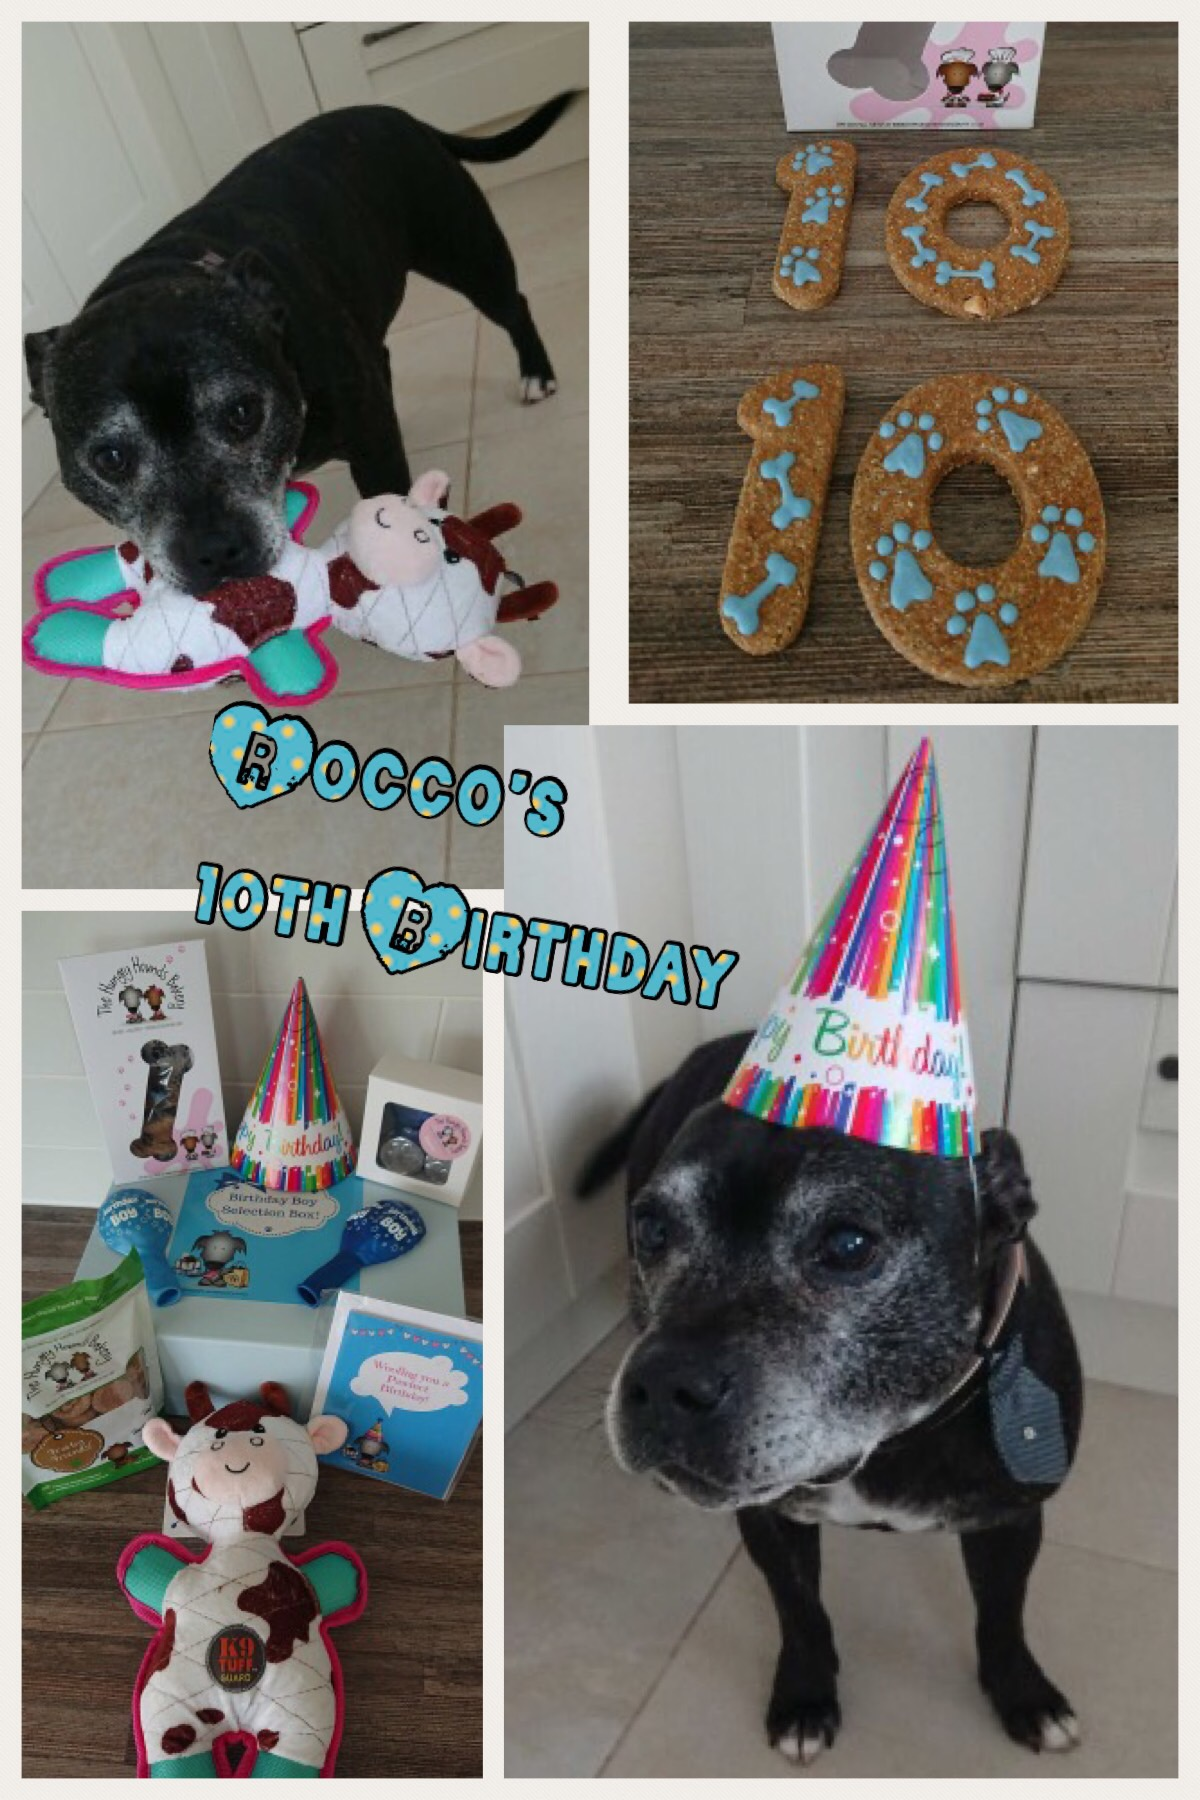 Rocco turns 10!